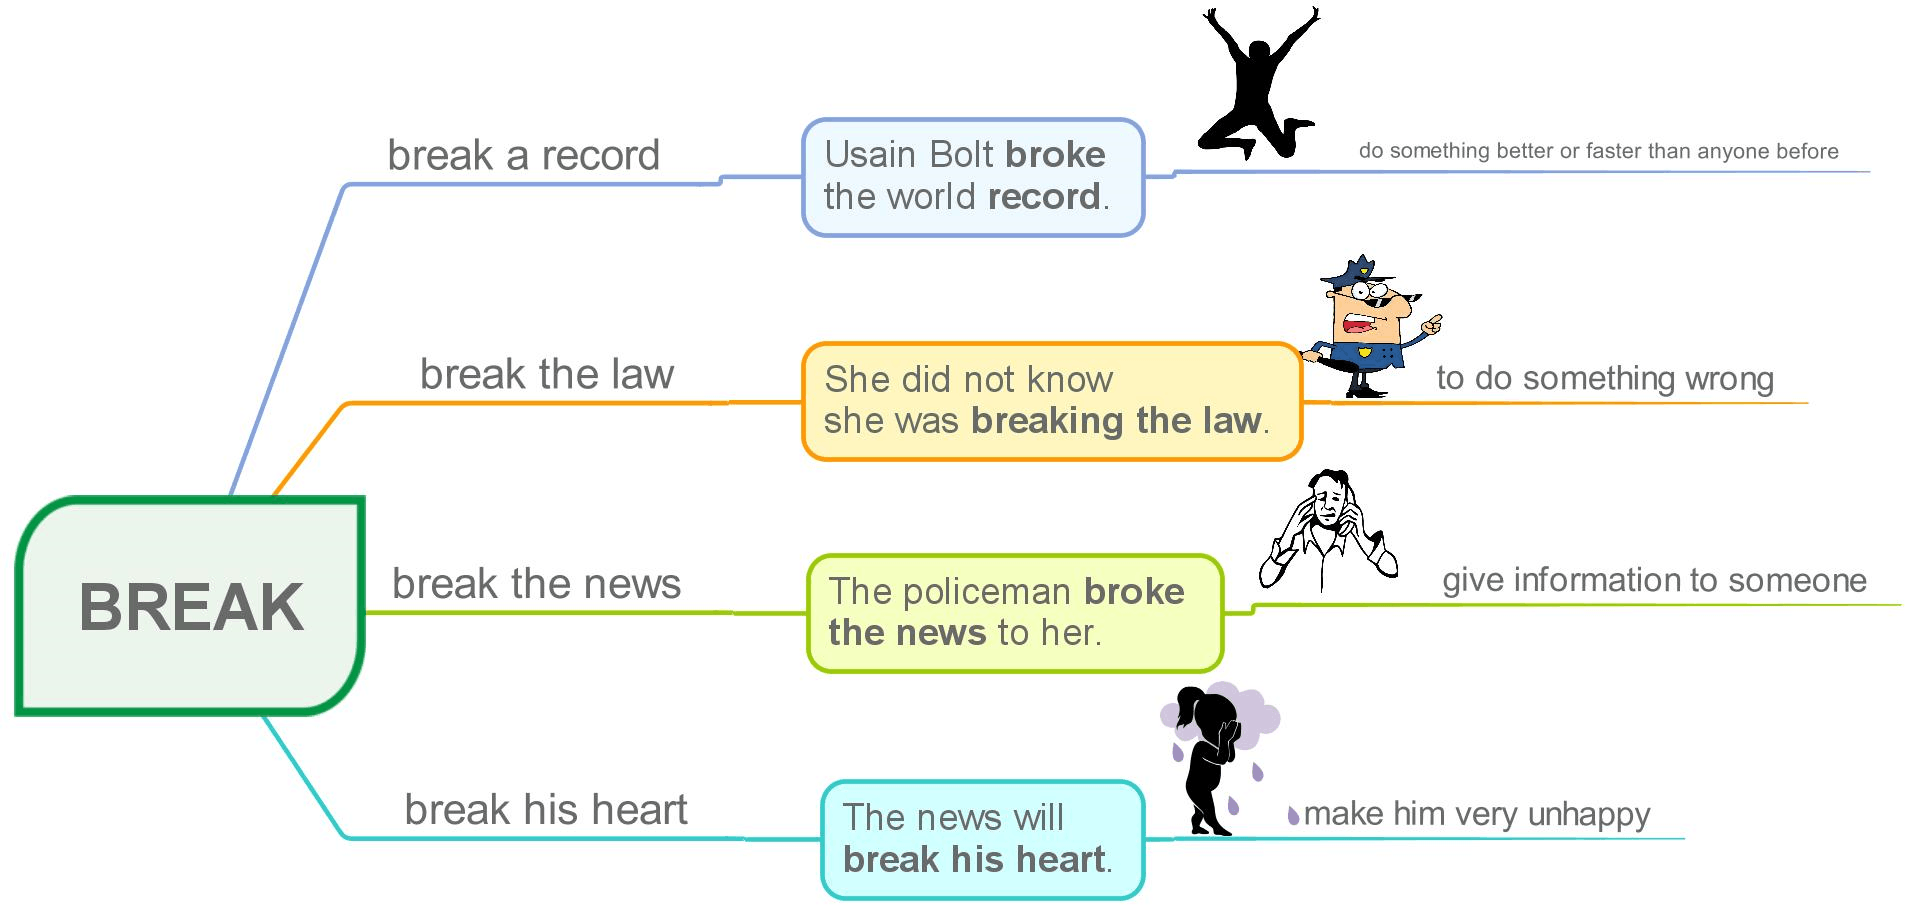 Common verb phreases with break